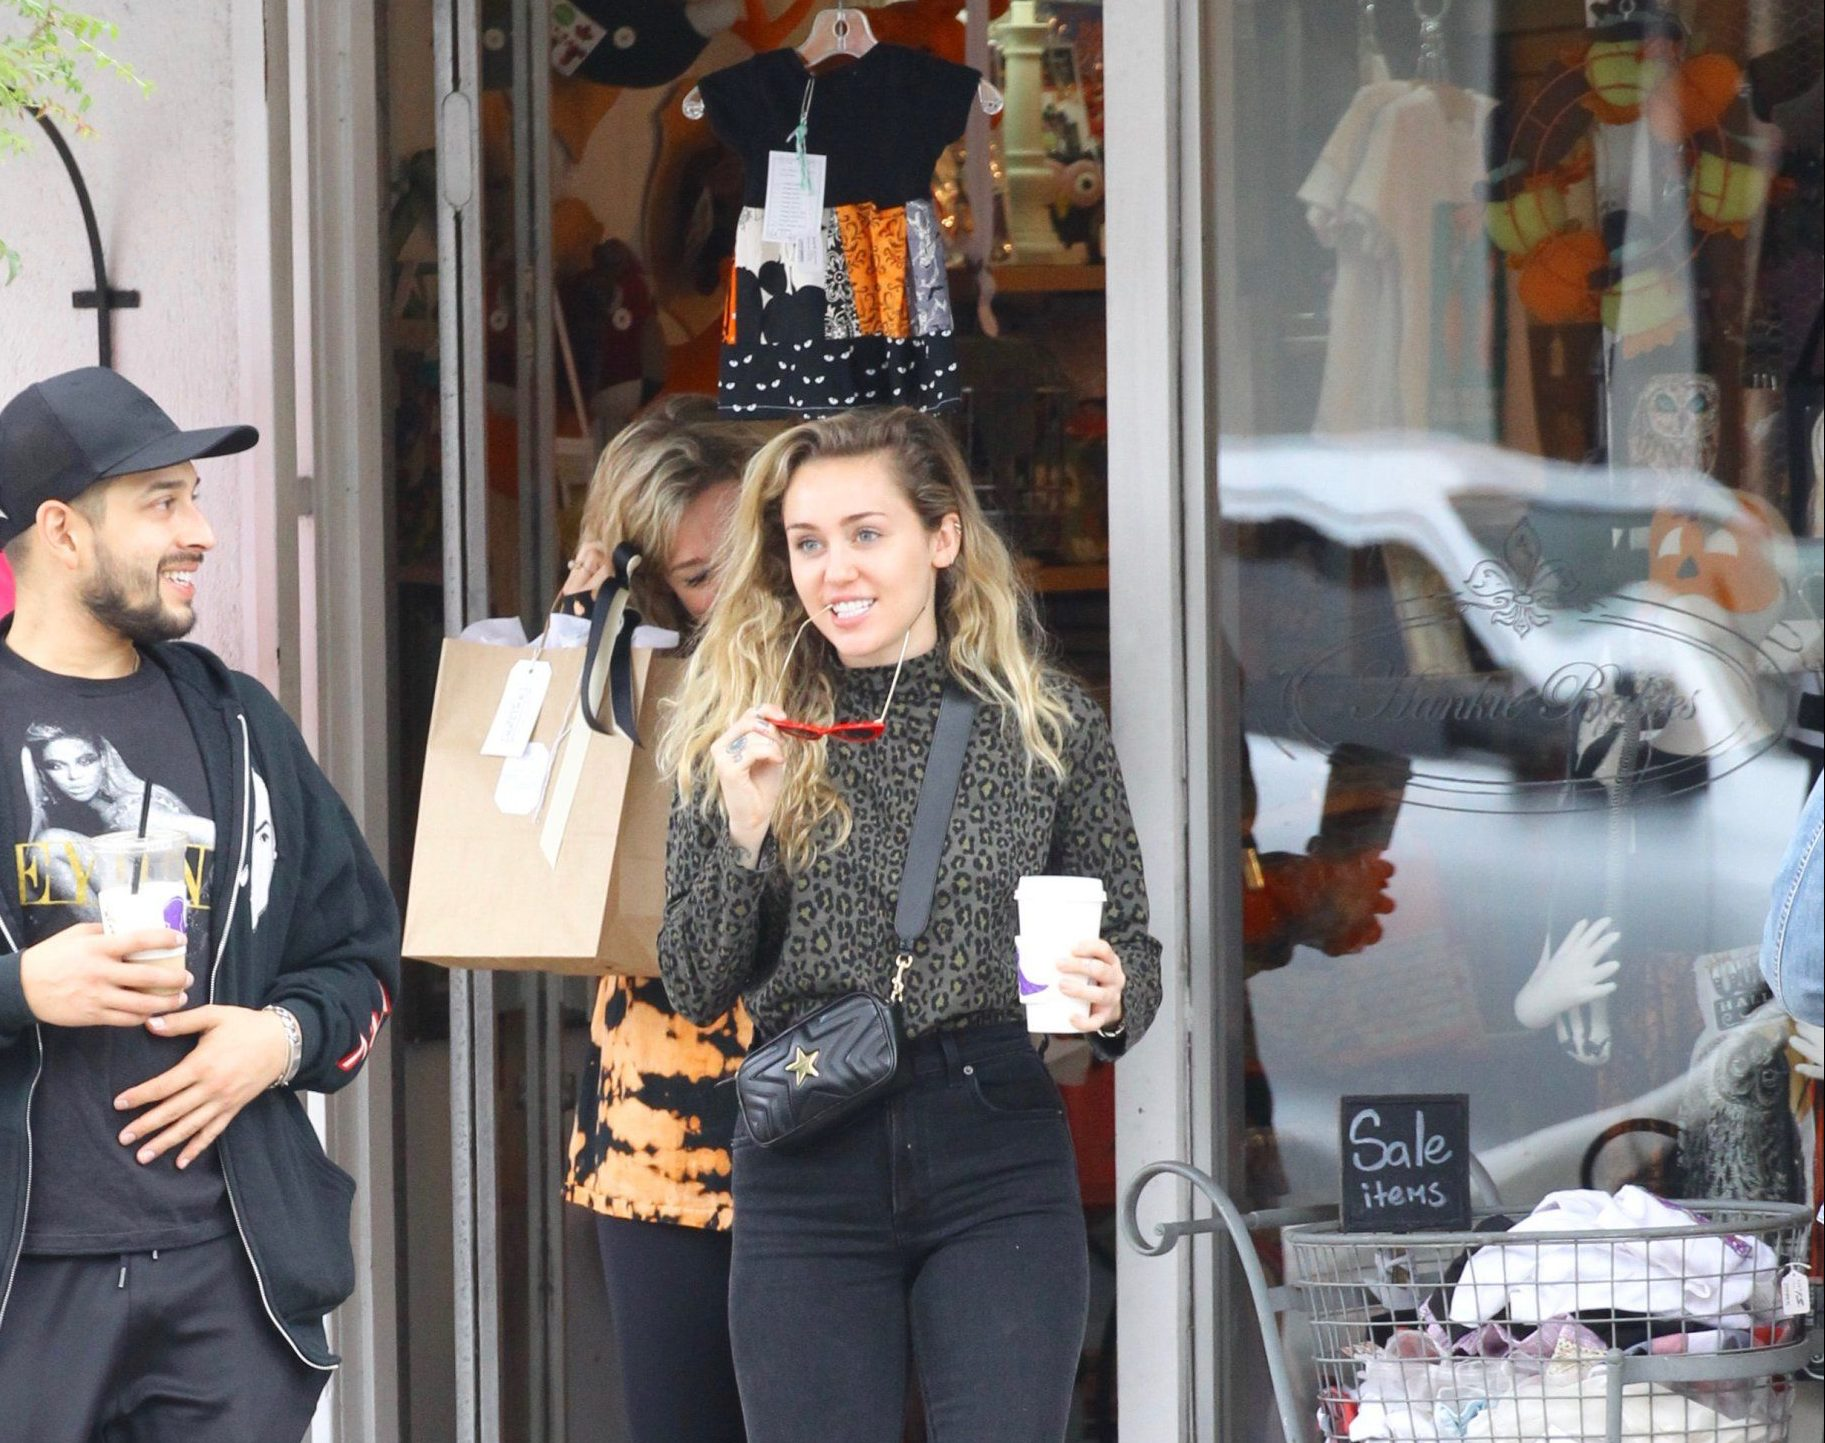 EXCLUSIVE: Miley Cyrus was spotted shopping for organic baby clothes at Hankie Babies in Studio City. Miley was seen shopping for onesies, socks and bibs during the outing. Miley spent twenty minutes inside the shop before leaving. She looked very happy during the shopping trip and her friends were happy for her as she exited the shop. Miley wore red glasses paired with Moschino snow boots. 13 Oct 2018 Pictured: Miley Cyrus shops for organic baby clothes in Studio City. Photo credit: ROMA / MEGA TheMegaAgency.com +1 888 505 6342